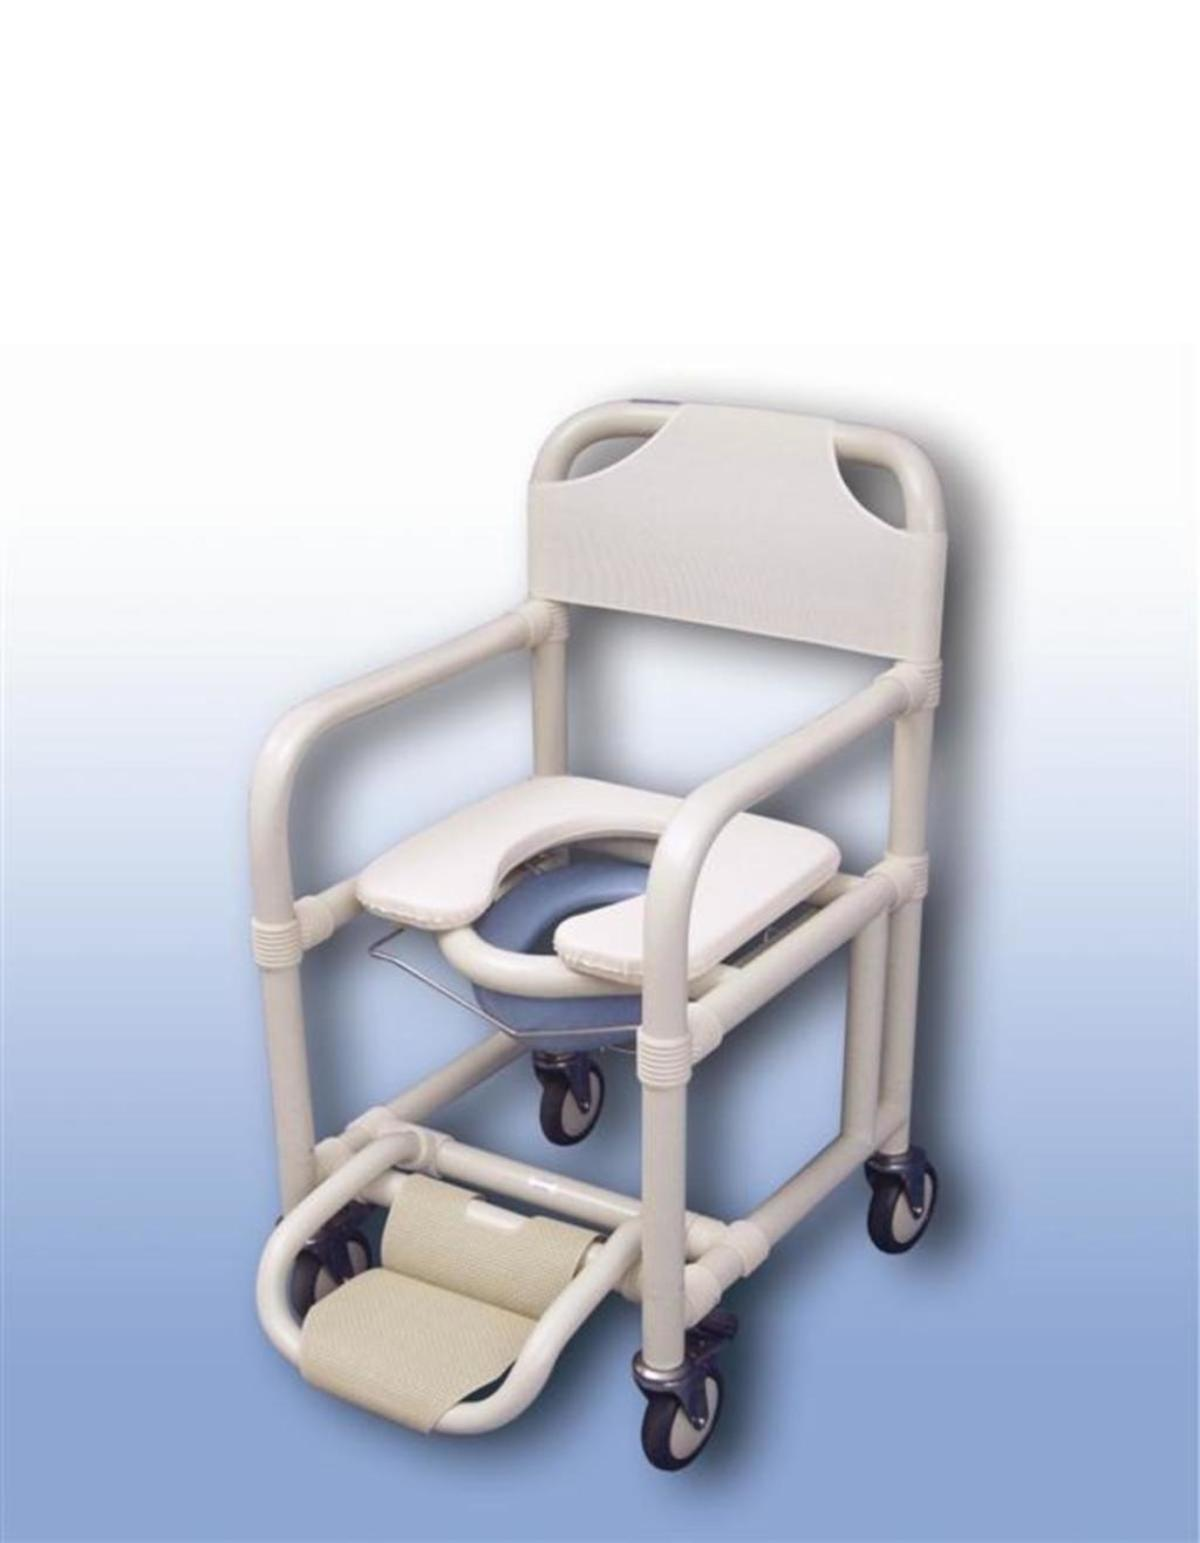 Standard Mobile Shower Chair With Pan Pan Holder